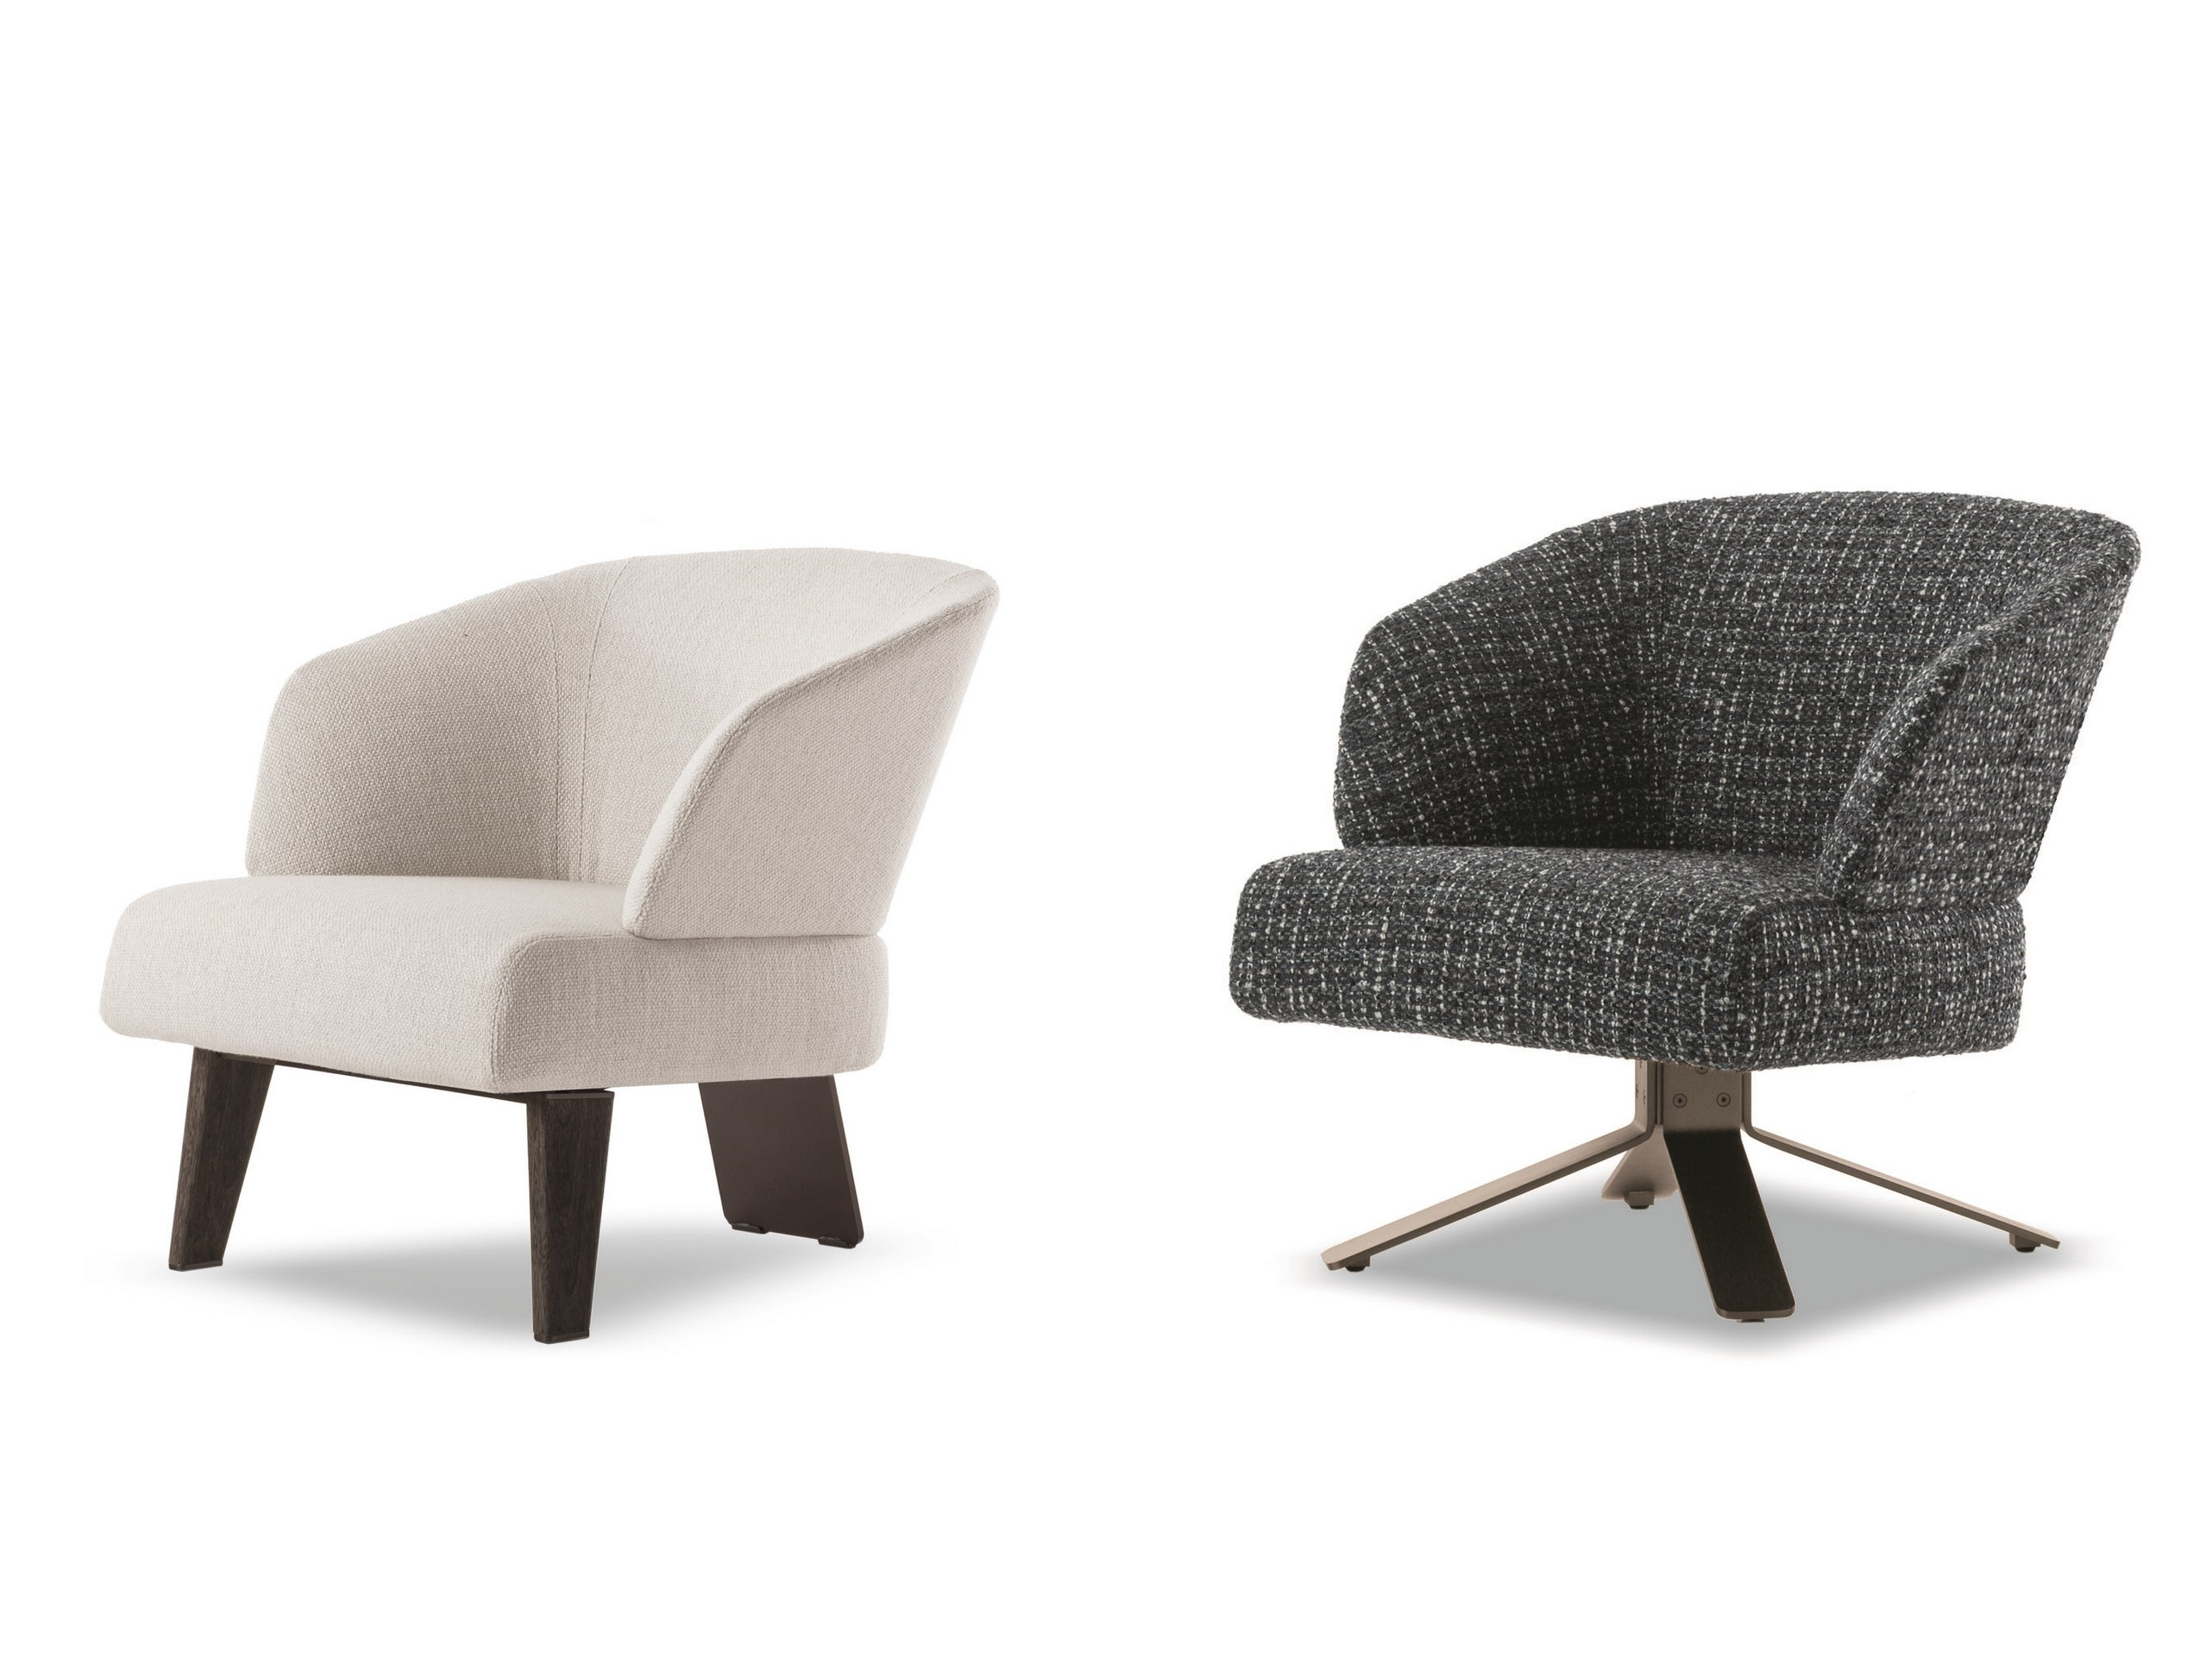 Small Armchair Easy Chair Creed Small By Minotti Design Rodolfo Dordoni